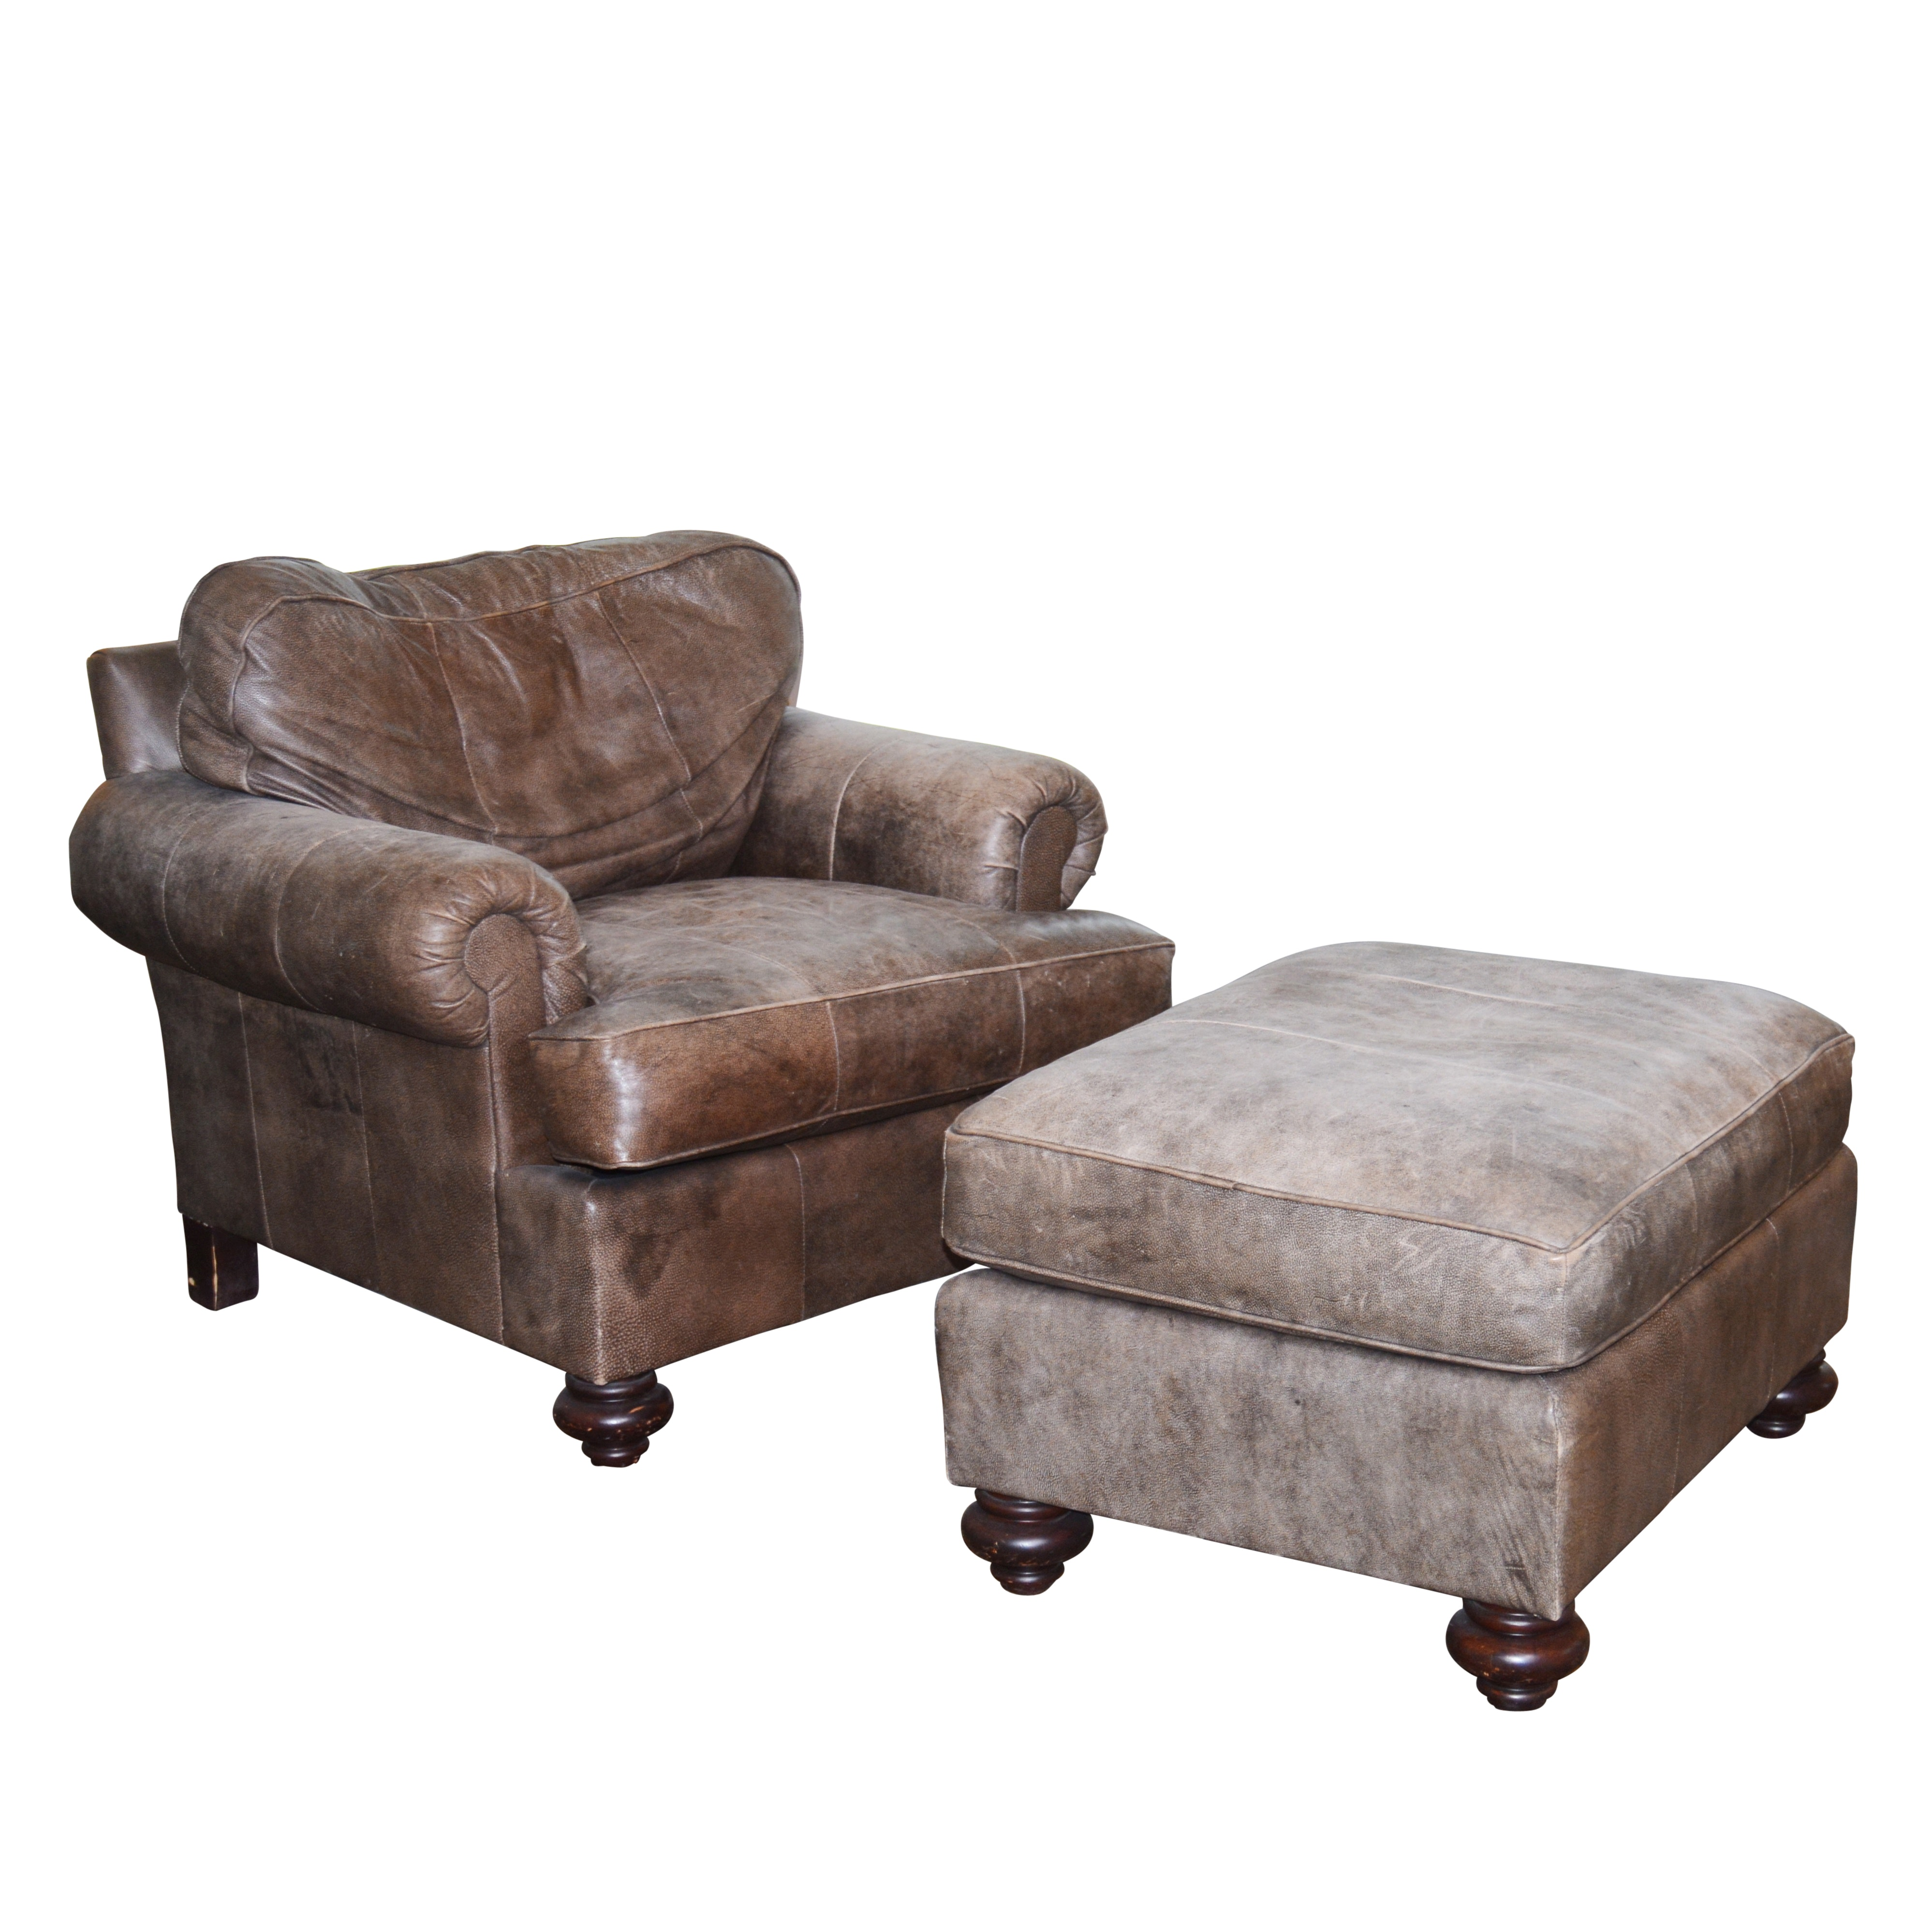 Dark Mocha Leather Chair and Ottoman by Henredon, 21st Century